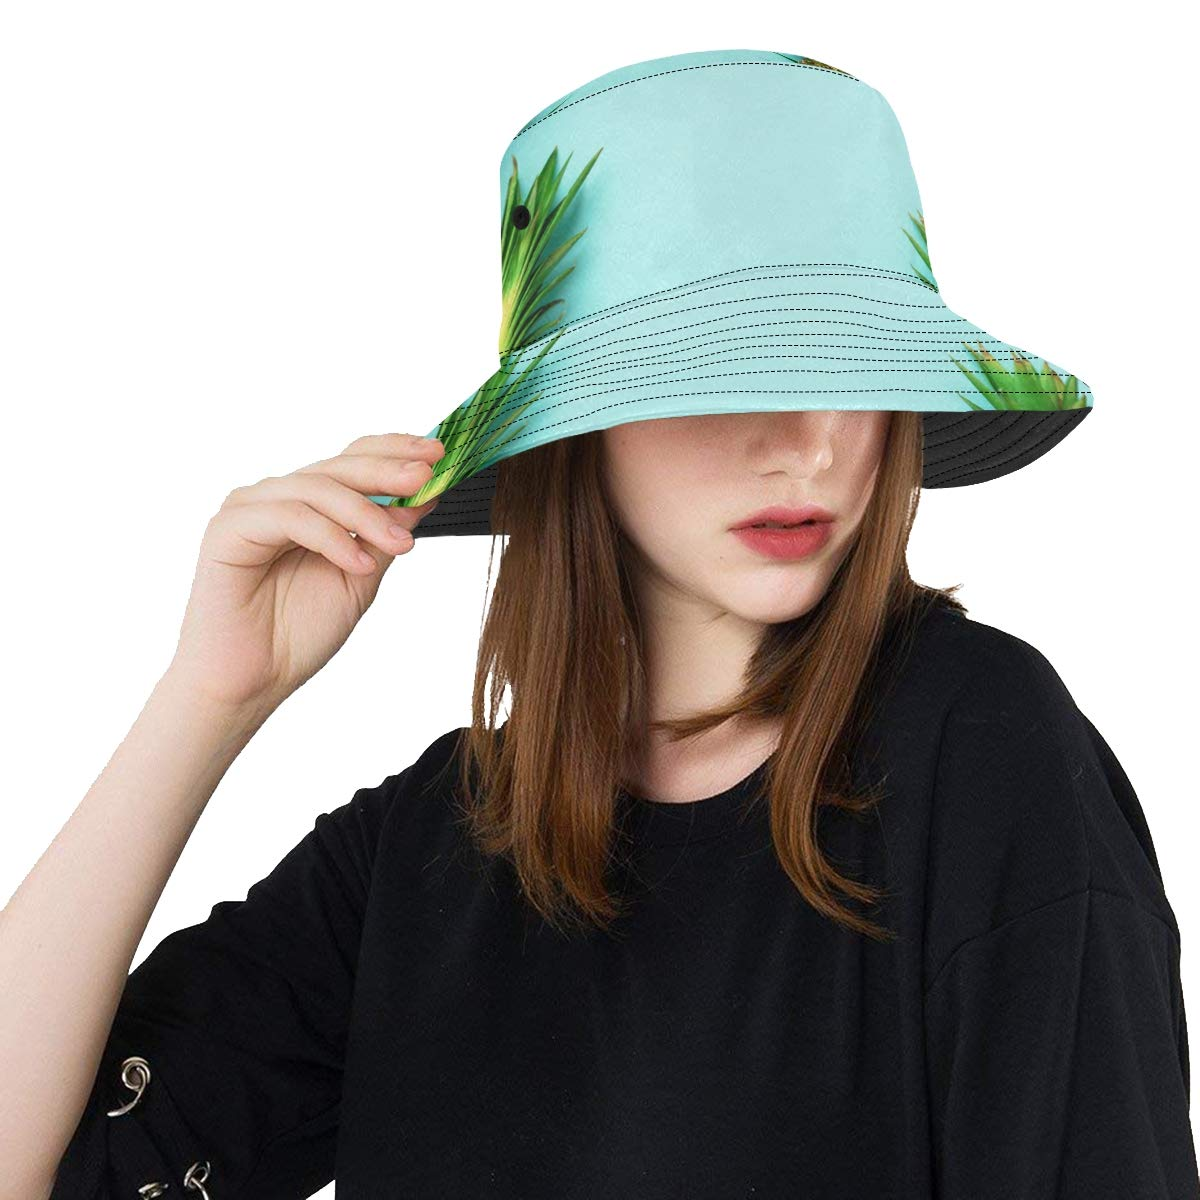 Summer Yellow Tripical Fruit Pineapple Palm New Summer Unisex Cotton Fashion Fishing Sun Bucket Hats for Kid Teens Women and Men with Customize Top Packable Fisherman Cap for Outdoor Travel